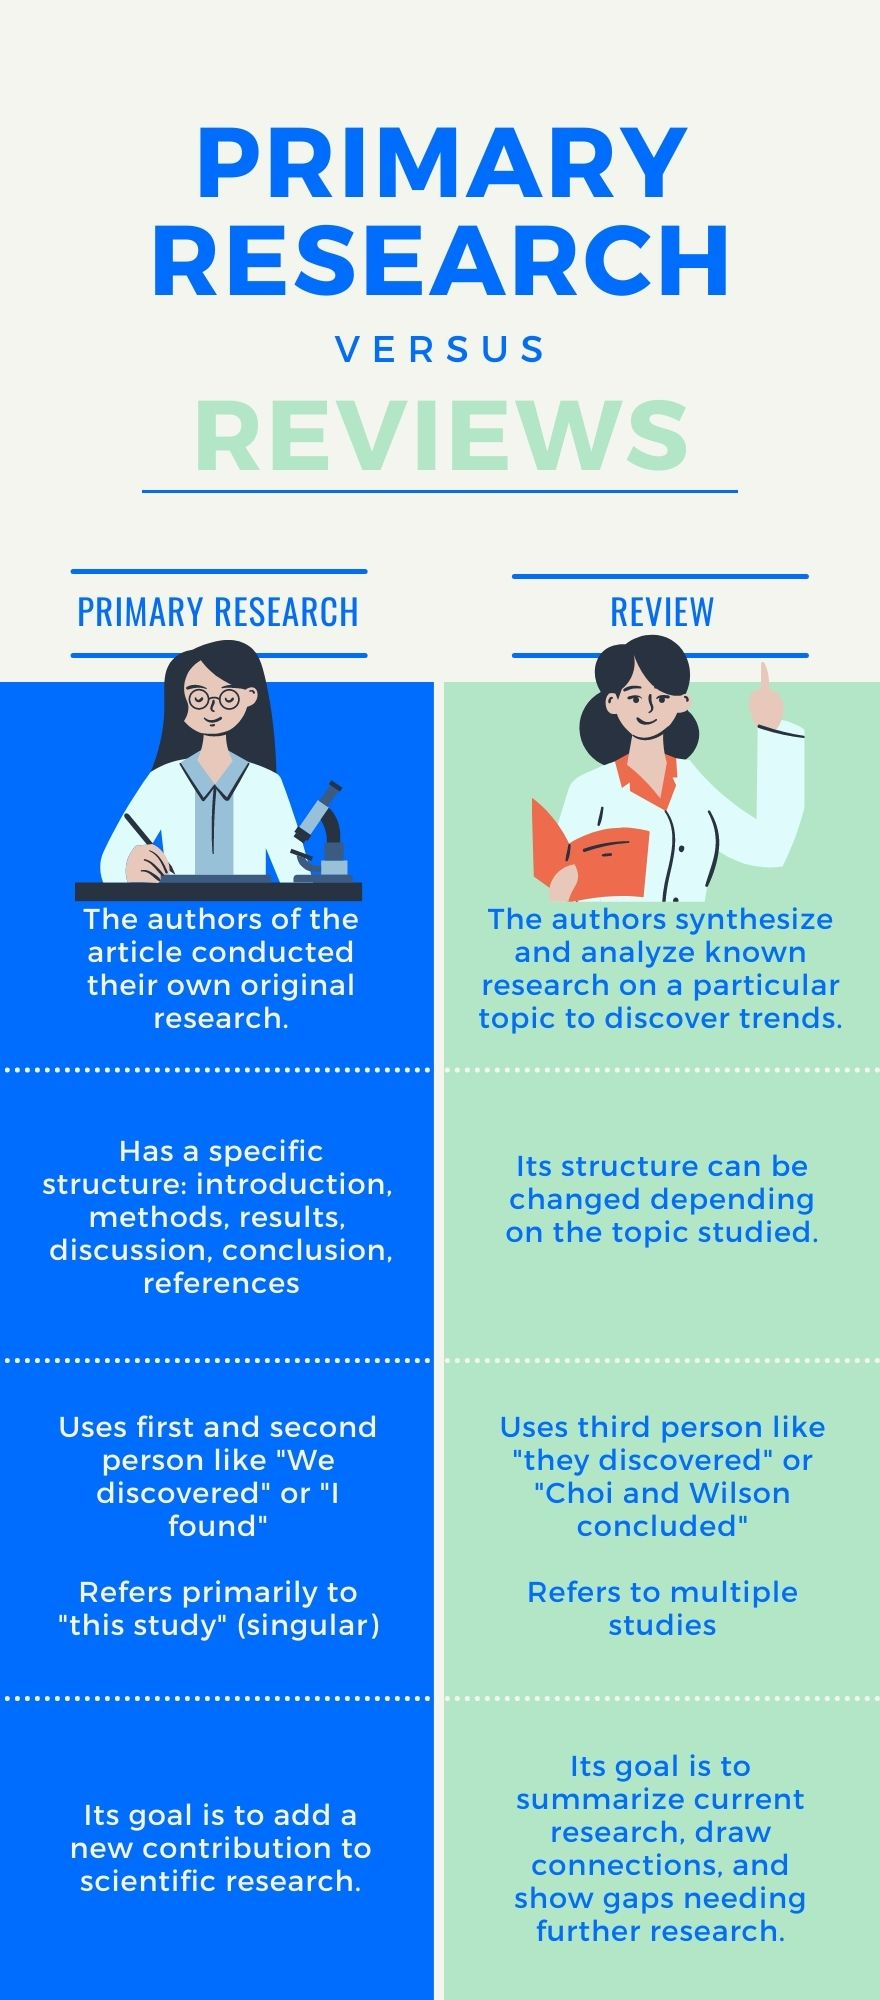 """Primary Research: The authors of the article conducted their own original research with the goal of adding new information, Has a specific structure: introduction,  methods, results,  discussion, conclusion, references. Uses first and second person like """"We discovered"""" or """"I found""""  Refers primarily to """"this study."""" Reviews: The authors synthesize and analyze known research on a particular topic to discover trends. Its structure can be changed depending on the topic studied. Uses third person like """"they discovered"""" or """"Choi and Wilson concluded""""  Refers to multiple studies"""